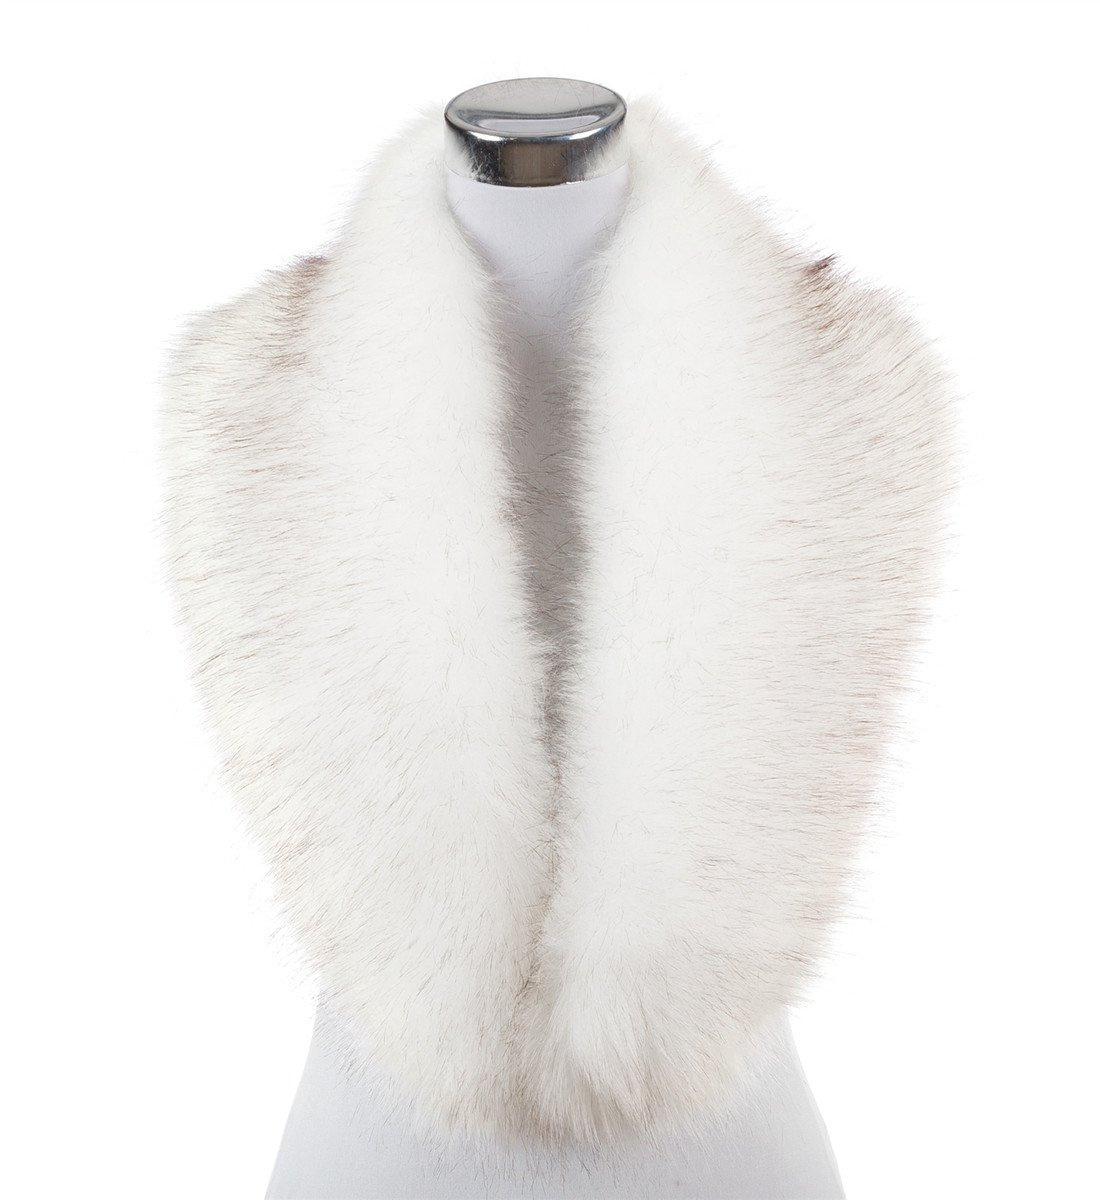 Lucky Leaf Women Winter Faux Fur Scarf Wrap Collar Shrug for Wedding Evening Party (White with Black Apex 1)